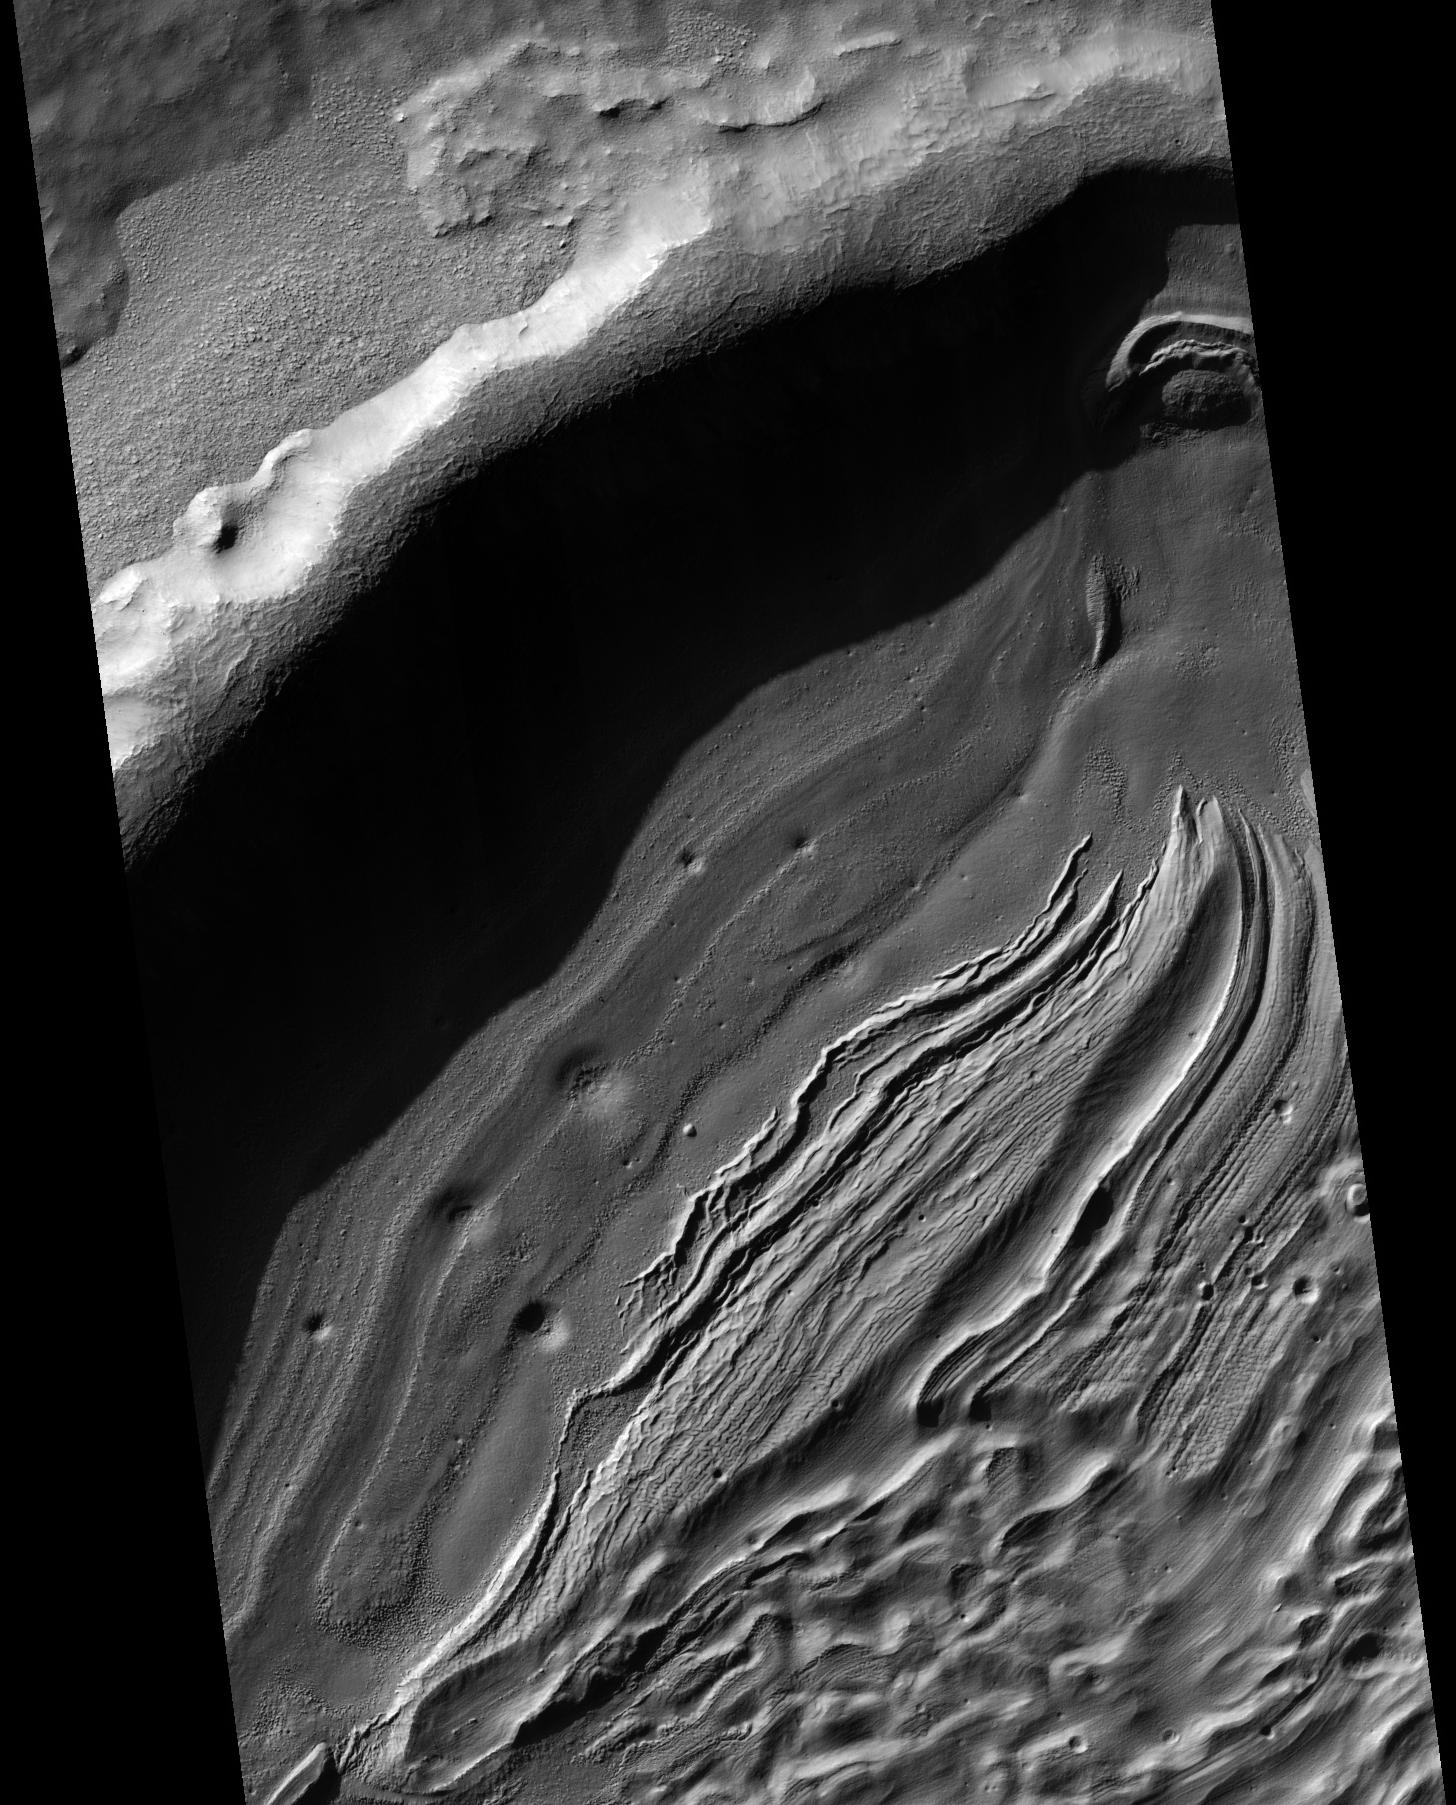 Hellas crater relief